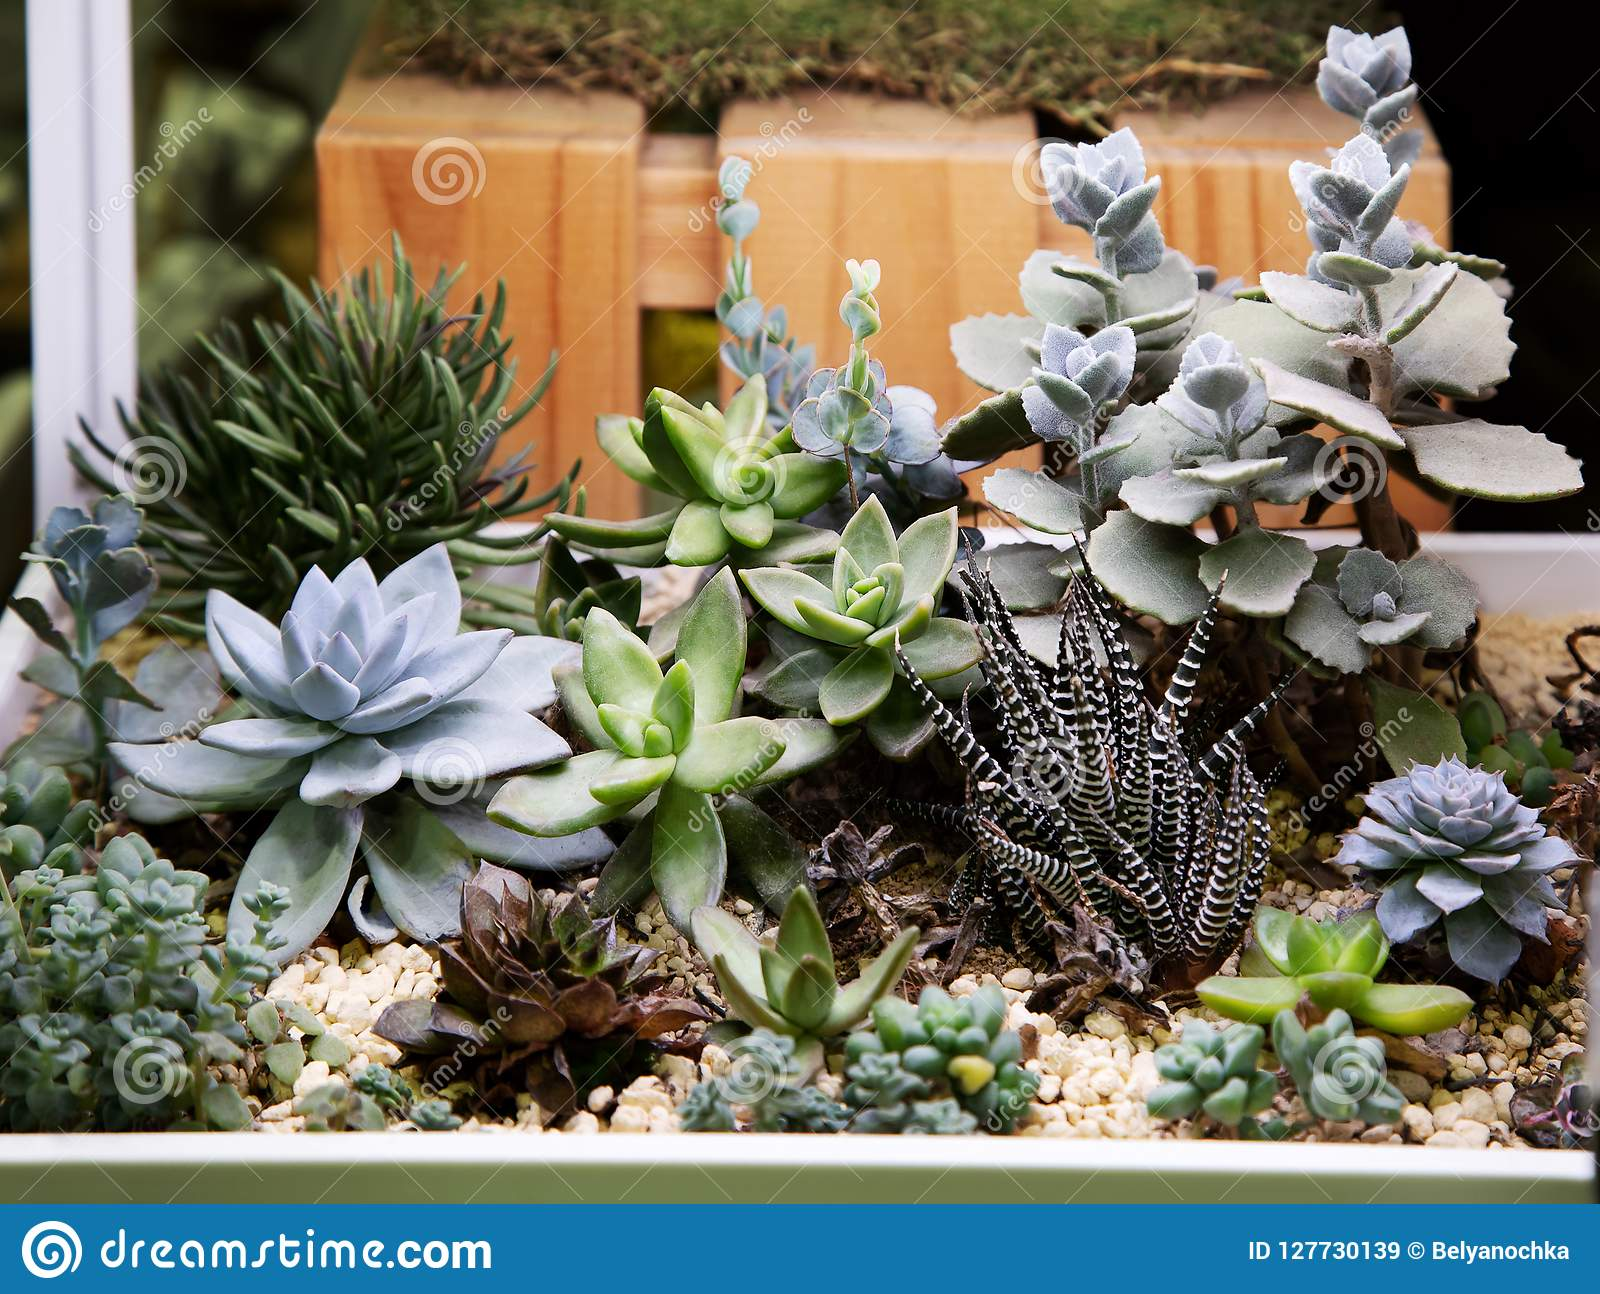 Collection Of Small Cactus Succulents In Pot Stock Image Image Of Outdoor Herb 127730139